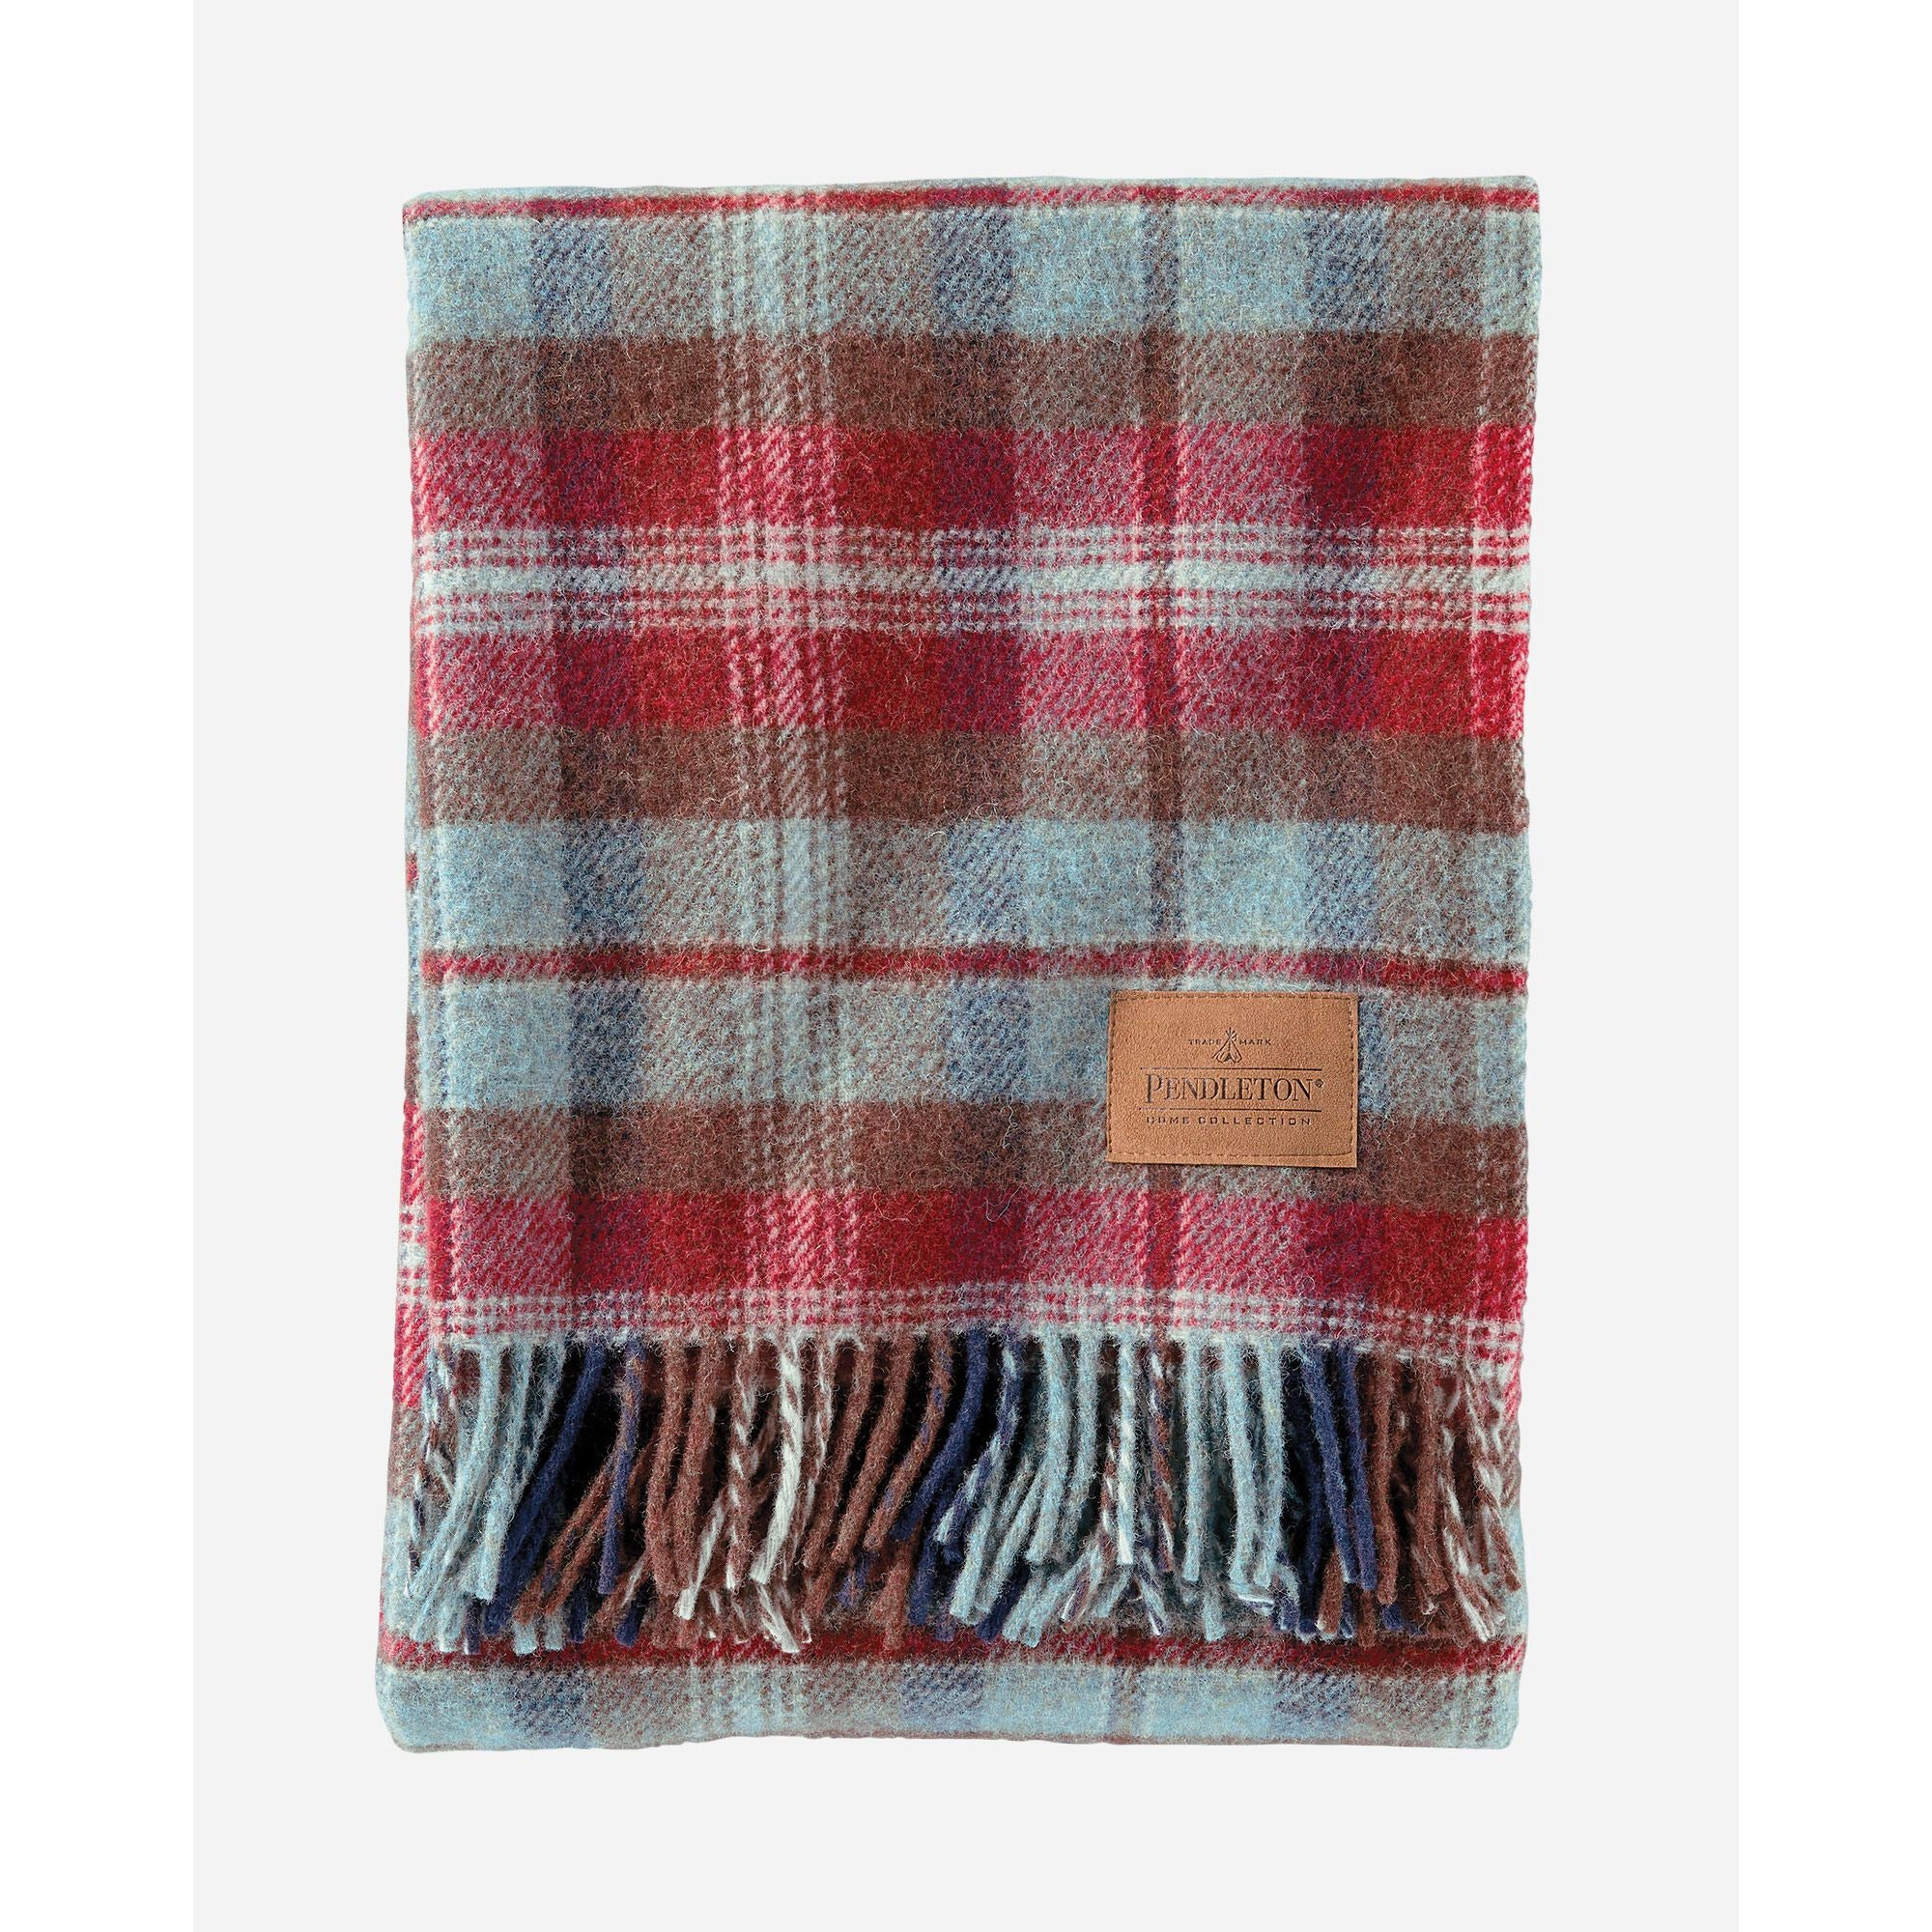 Ruby Beach Plaid Throw with Leather Carrier | Pendleton